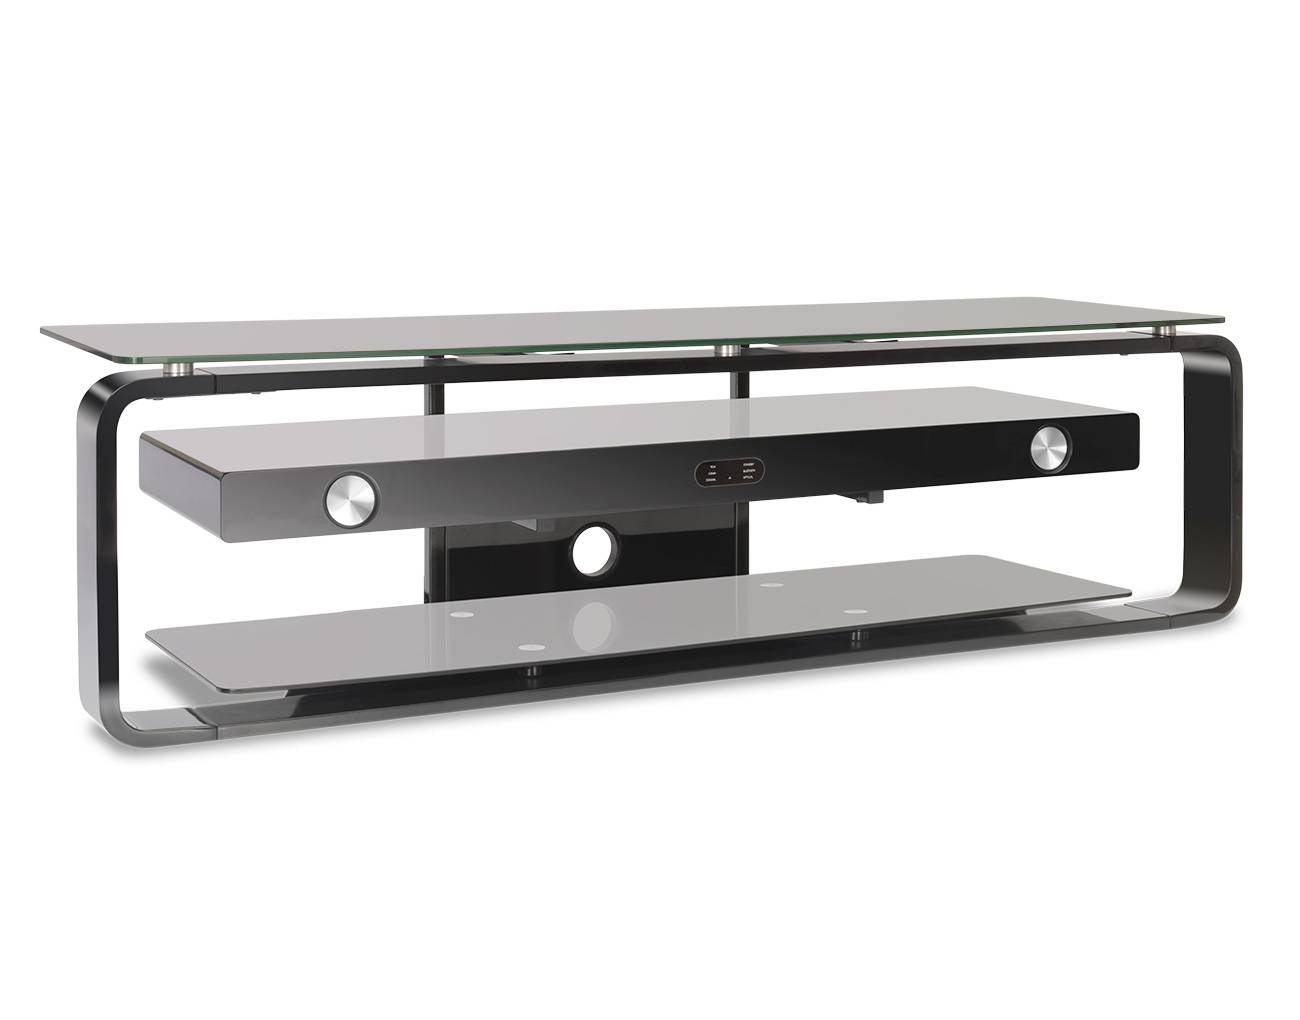 Glass Tv Cabinet With Integrated 80 Watt Soundbase Tvs1616 – Cello Throughout Glass Tv Cabinets (View 15 of 15)